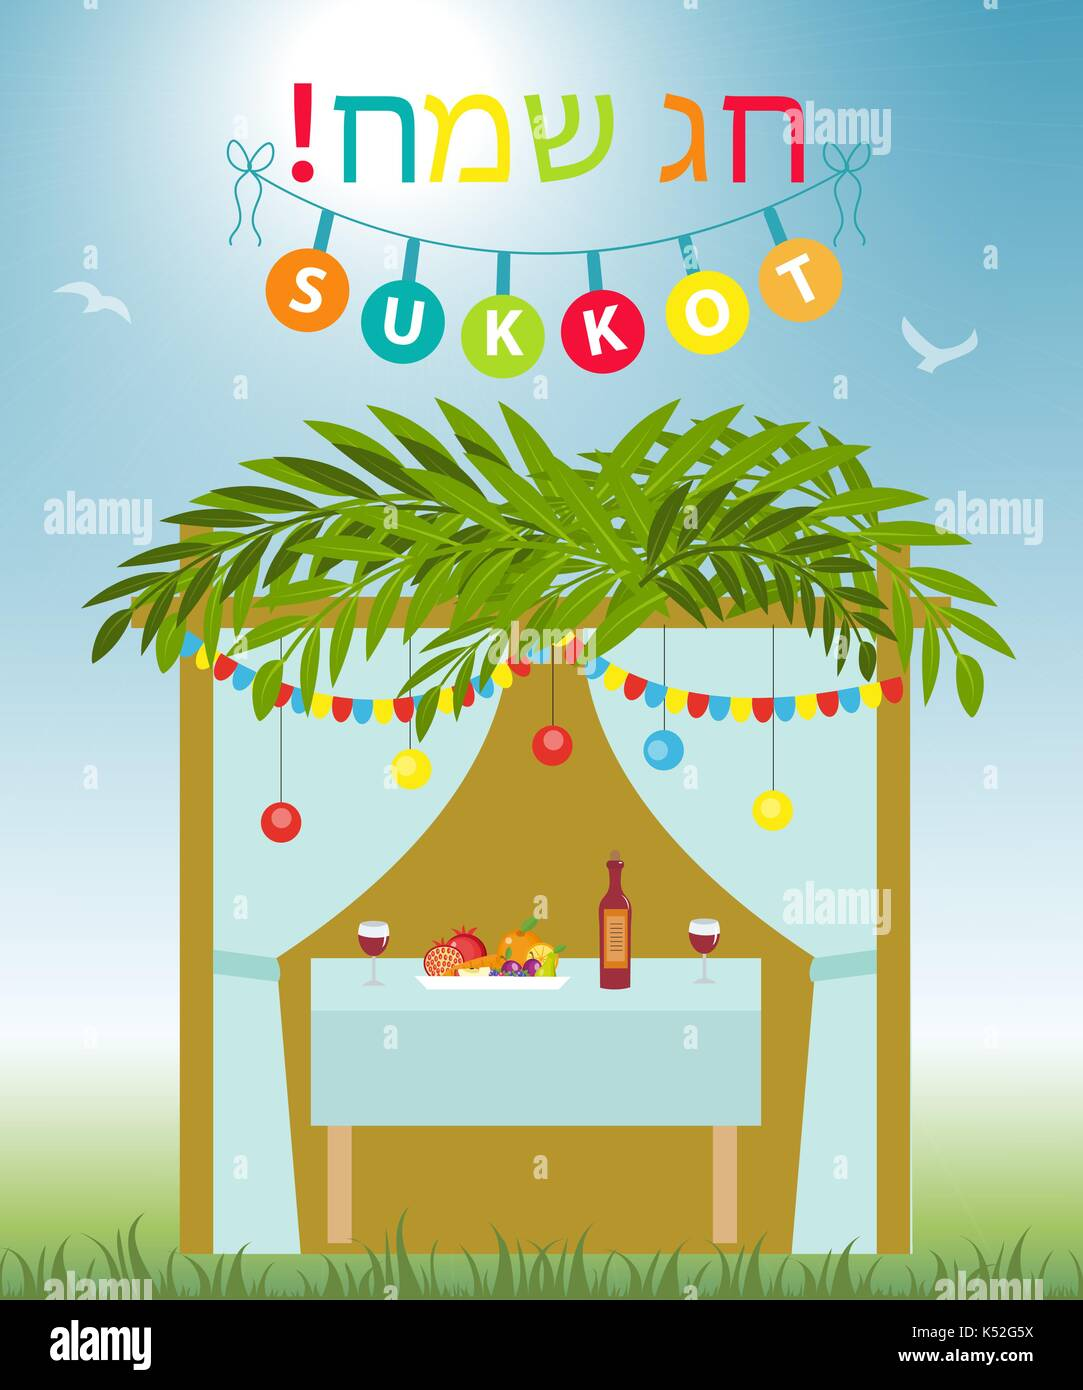 Greeting card happy sukkot with sukkah template for a poster flyer greeting card happy sukkot with sukkah template for a poster flyer isolated on white background vector illustration m4hsunfo